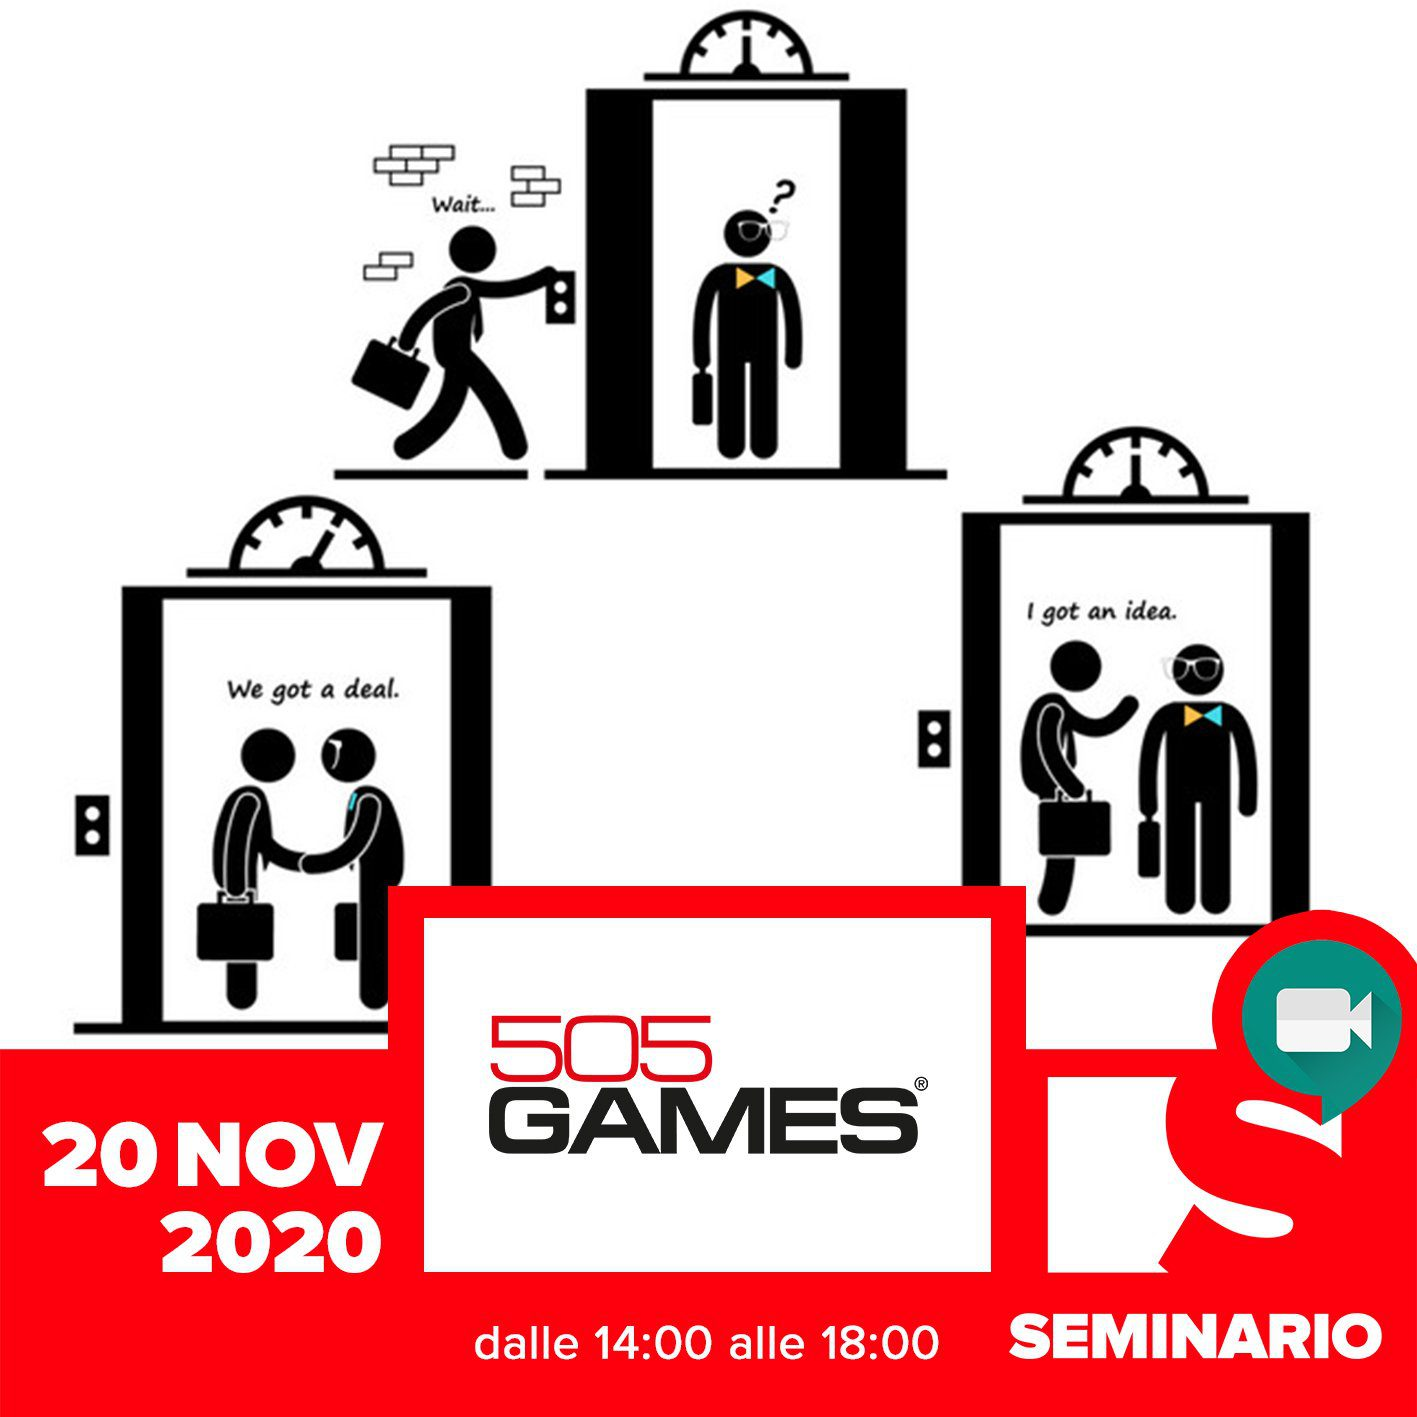 SEMINARIO – GIOVANNA VILLANI<br> How to pitch your game